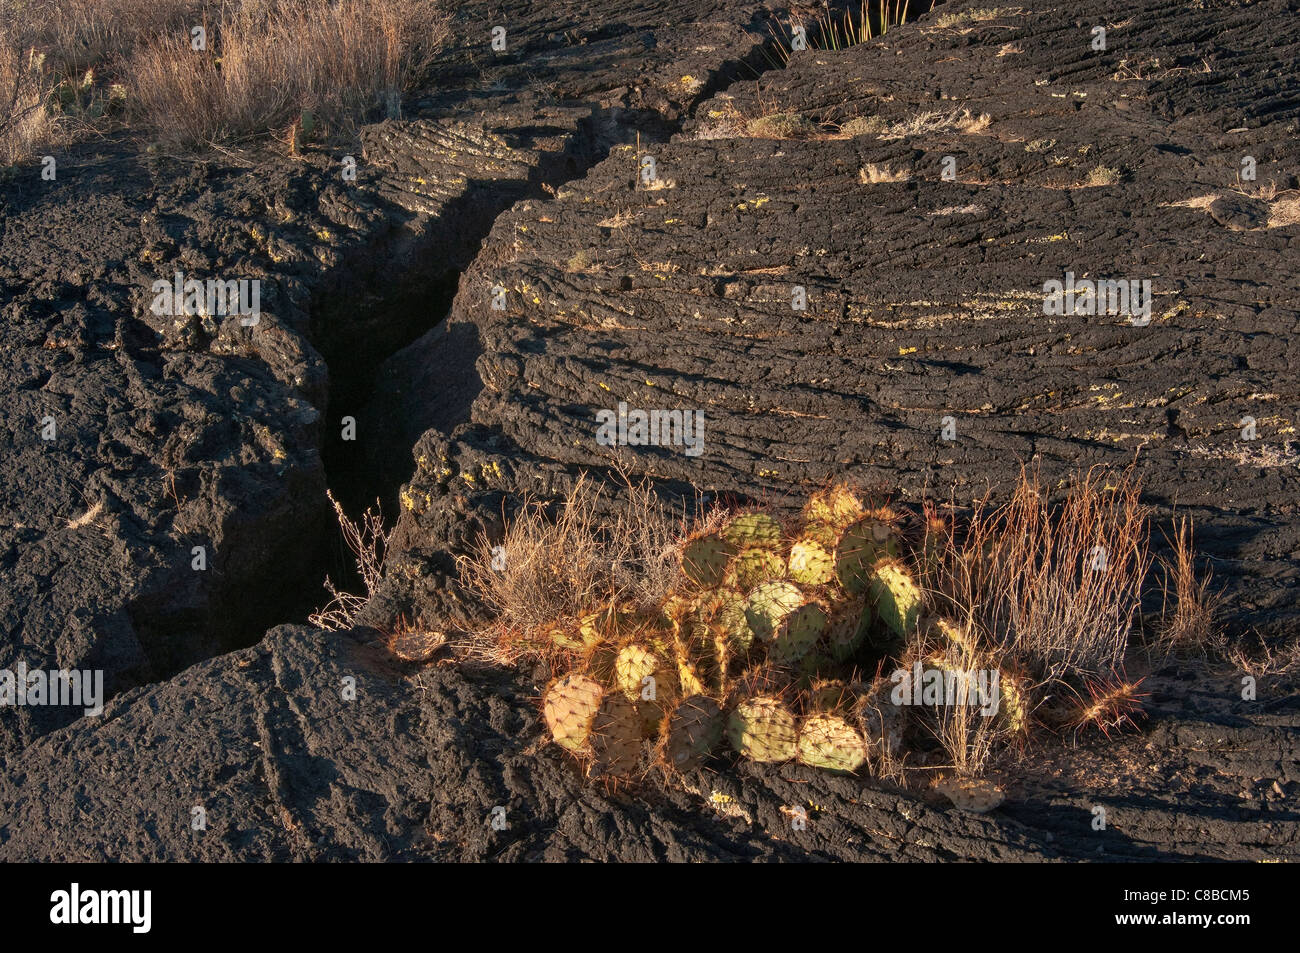 Prickly pear cactus in cracked pahoehoe lava field, Carrizozo Malpais lava flow at Valley of Fires, New Mexico, - Stock Image